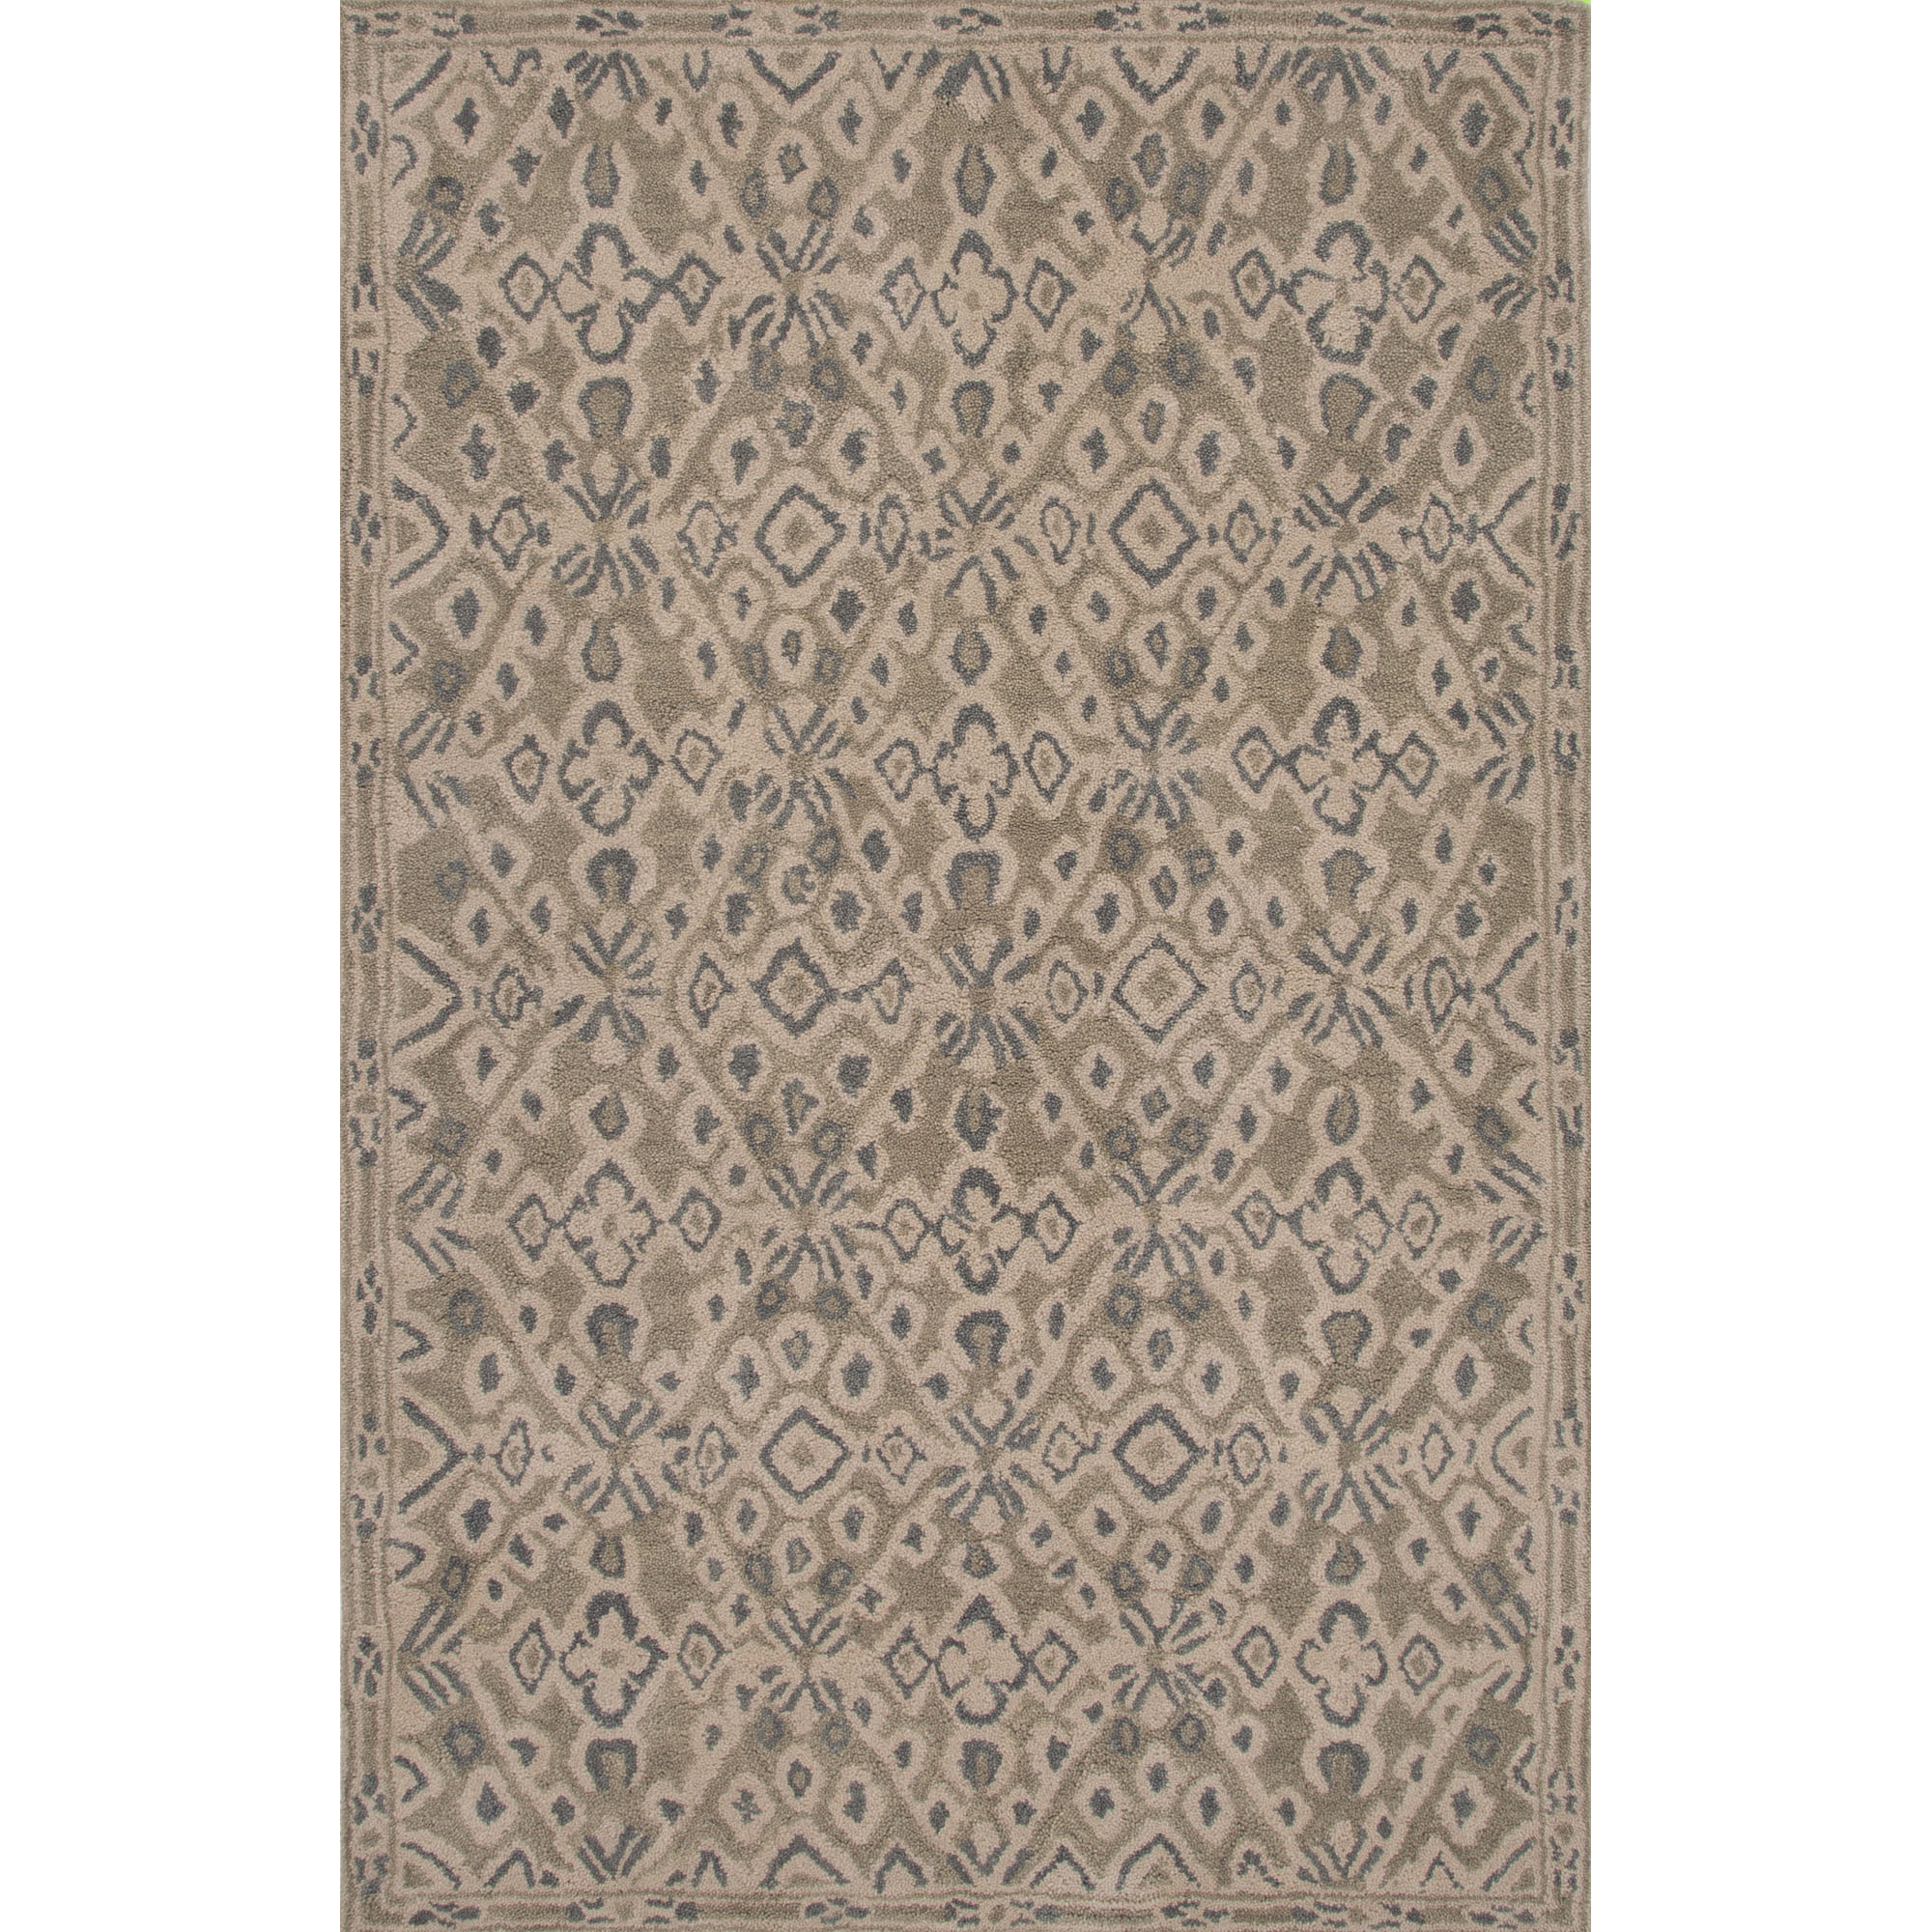 JAIPUR Rugs Traditions Made Modern Tufted 5 x 8 Rug - Item Number: RUG121361